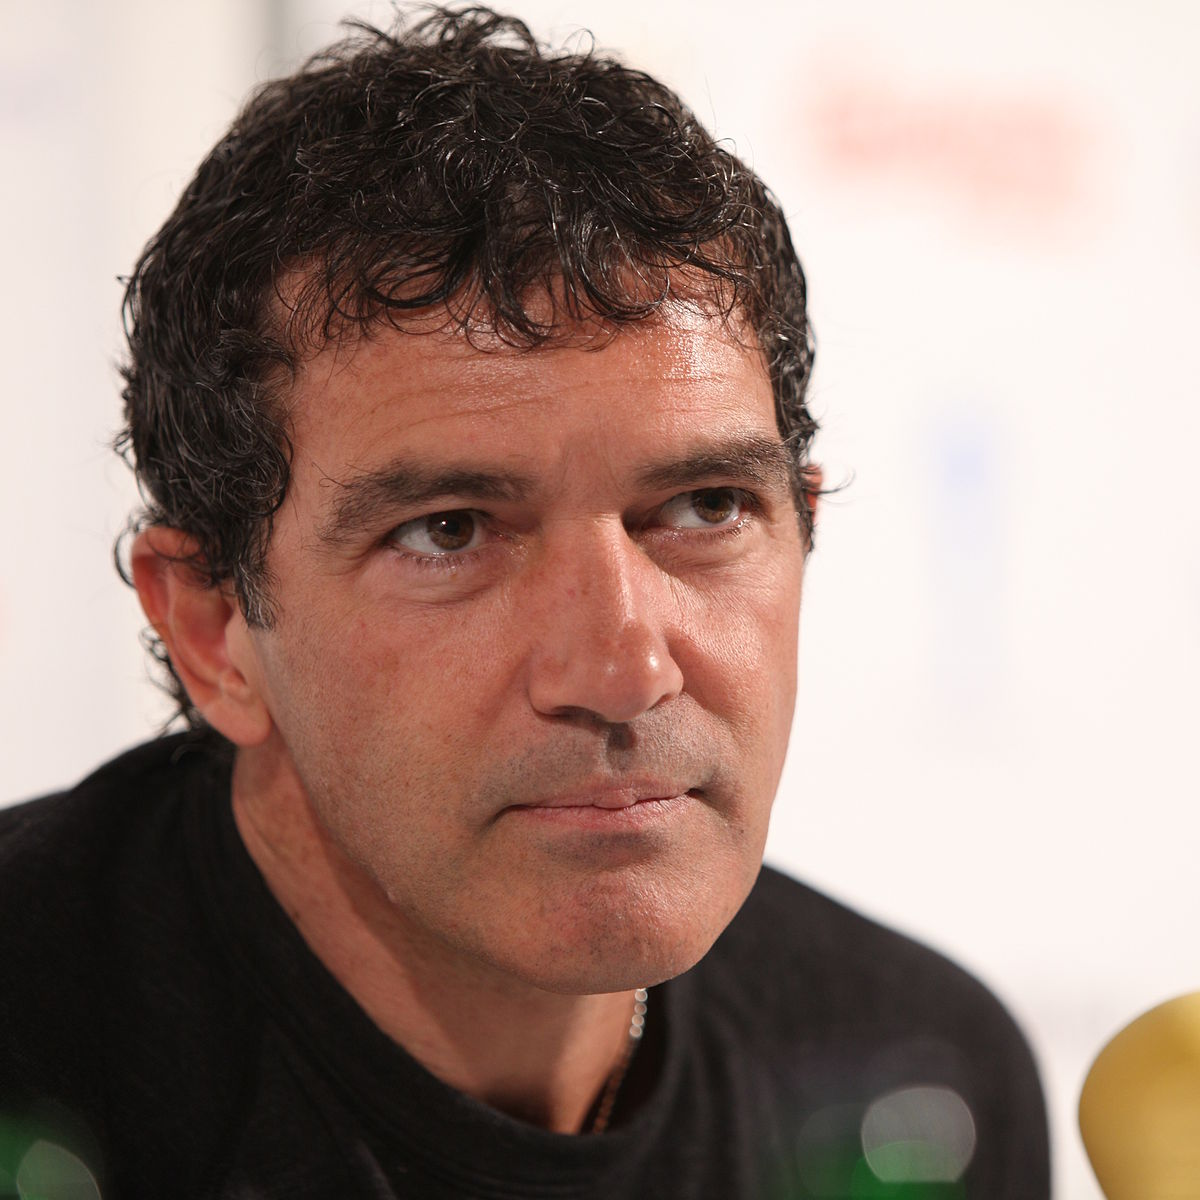 Antonio Banderas - Simple English Wikipedia, the free ... Antonio Banderas